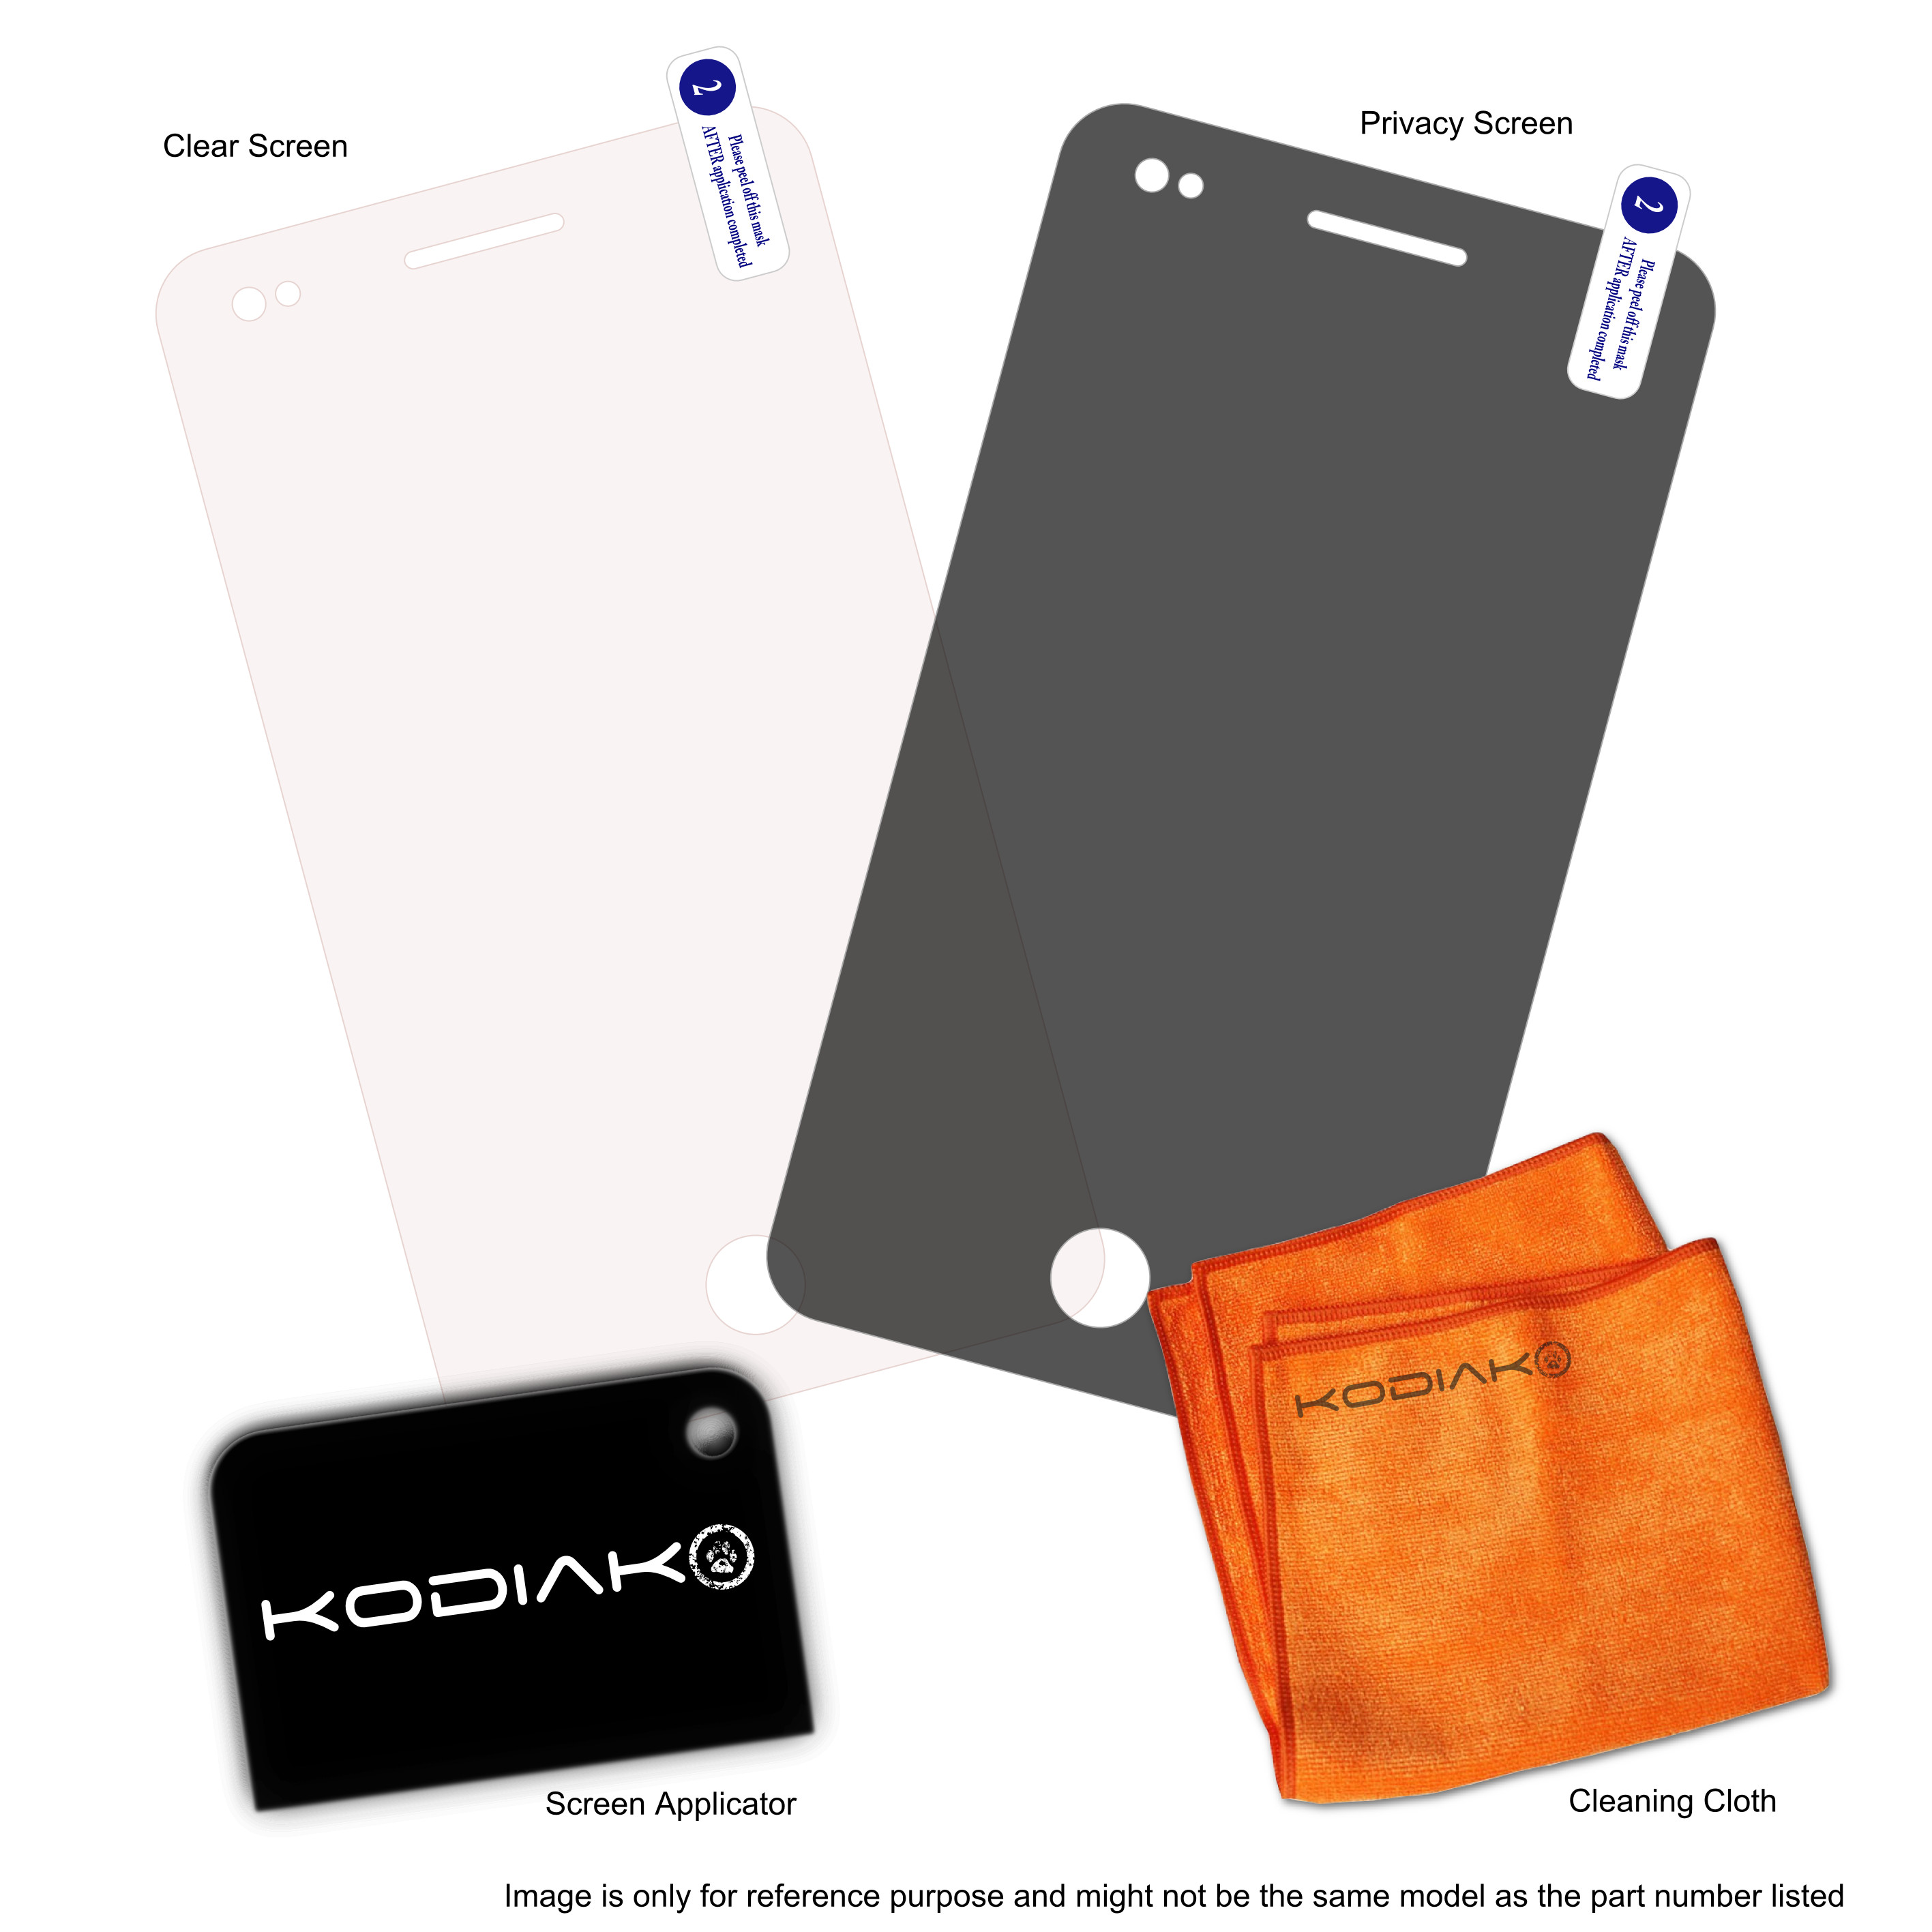 original-kodiak-screen-protector-samsung-s3350-chattrevi-iprotect-2-package-clear-privacy